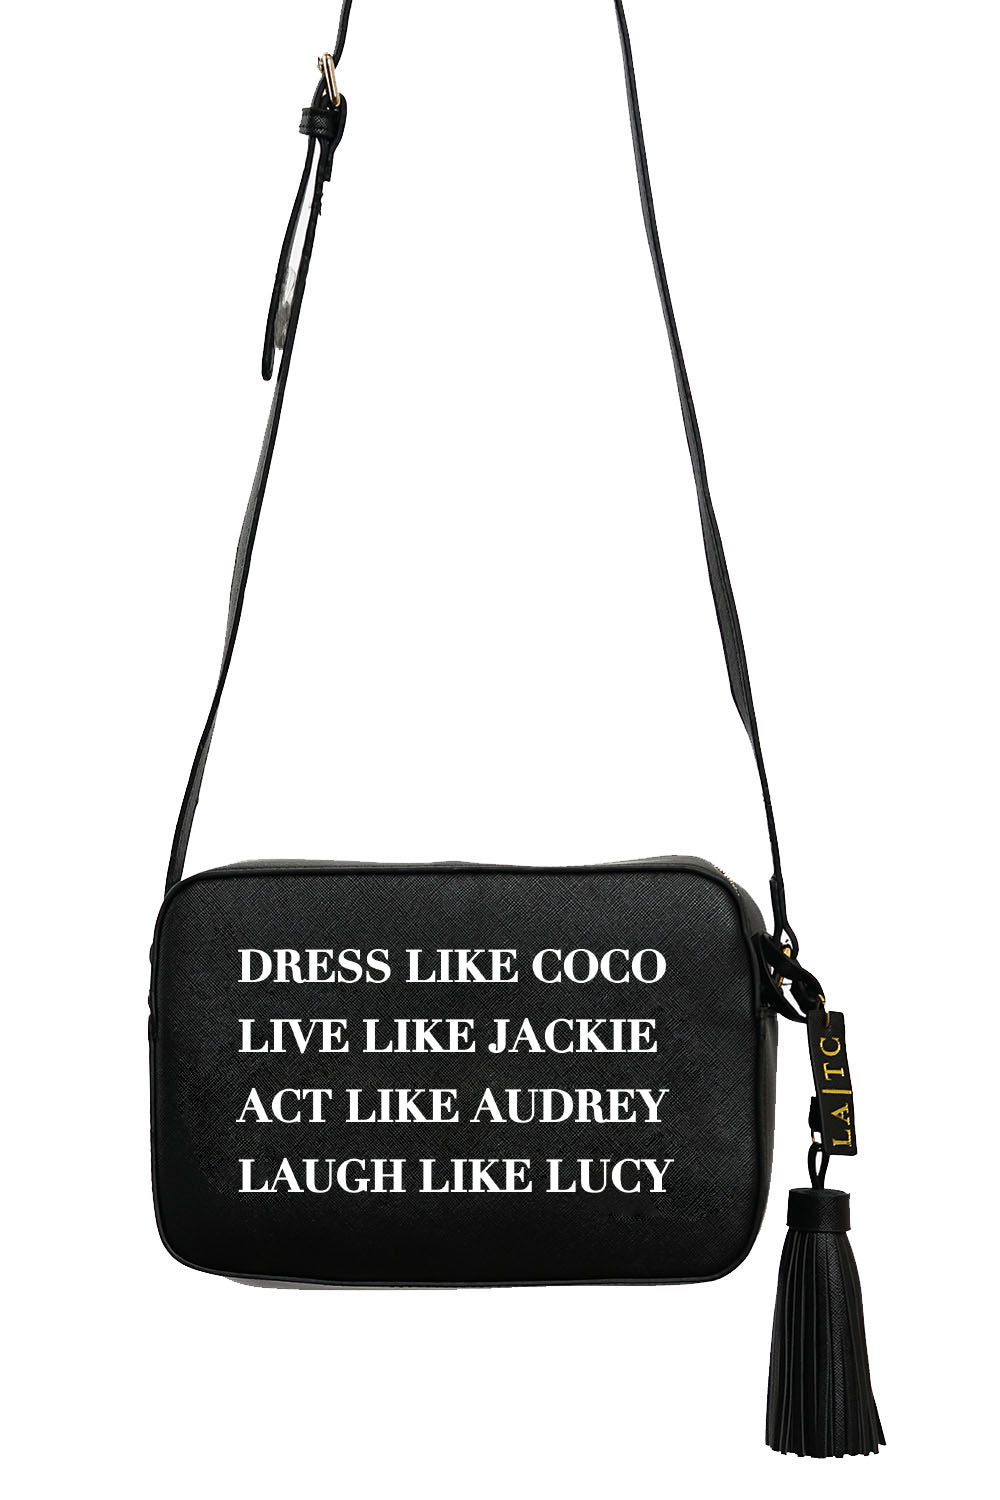 VEGAN CROSSBODY BAG - Dress Like Coco (Black)